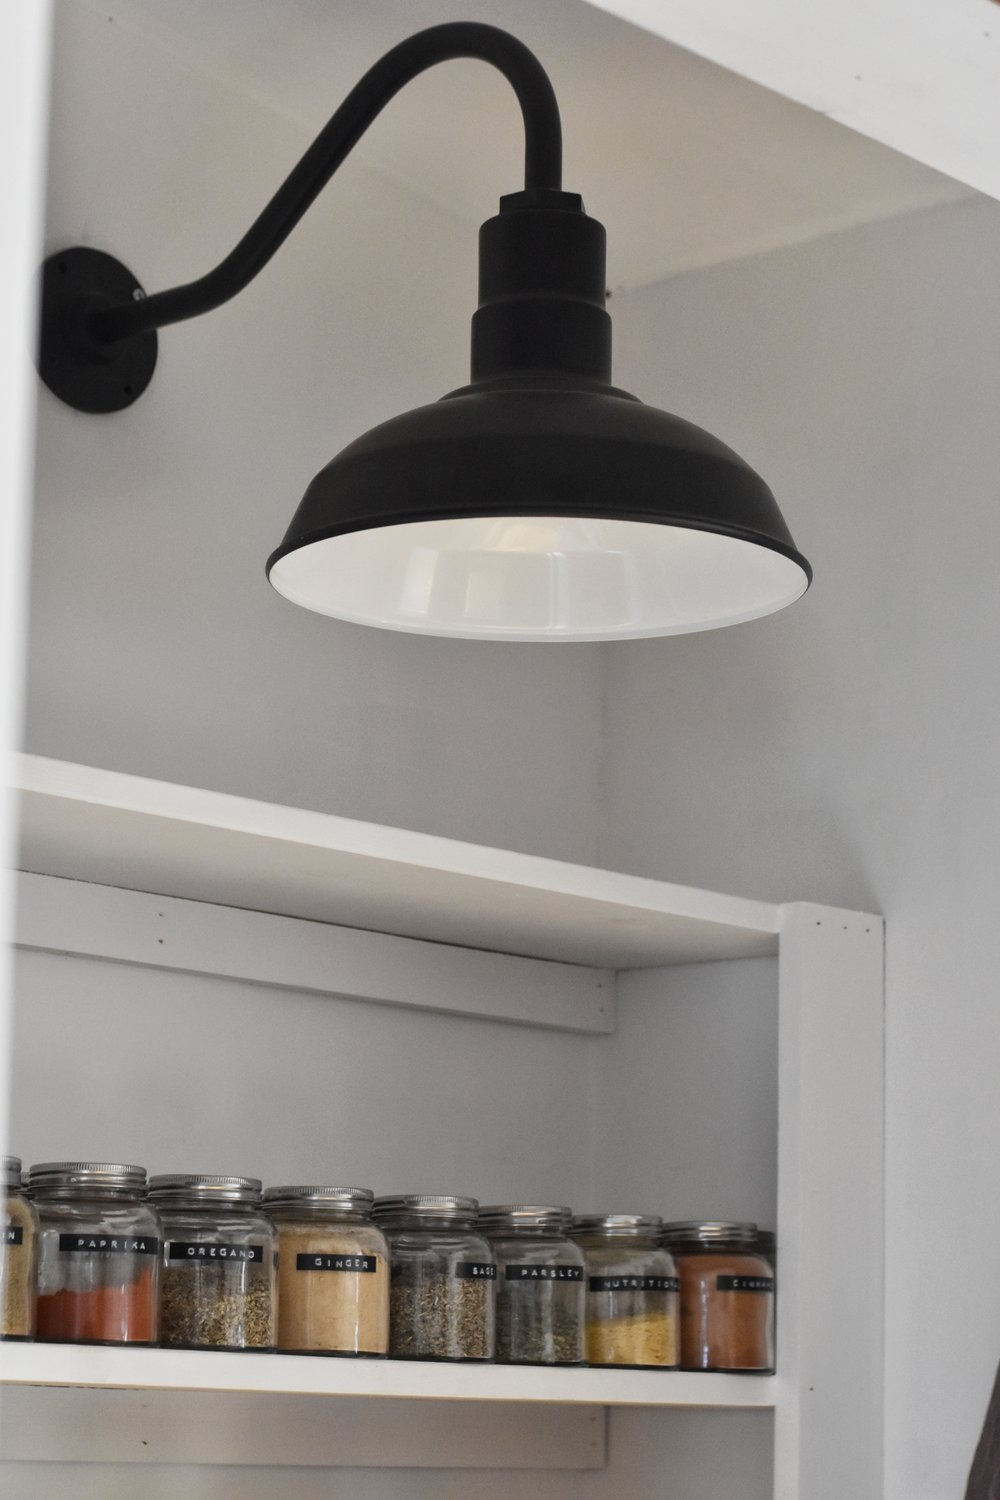 gooseneck light - this gooseneck light is the perfect farmhouse light. i love that it is also made here in the usa